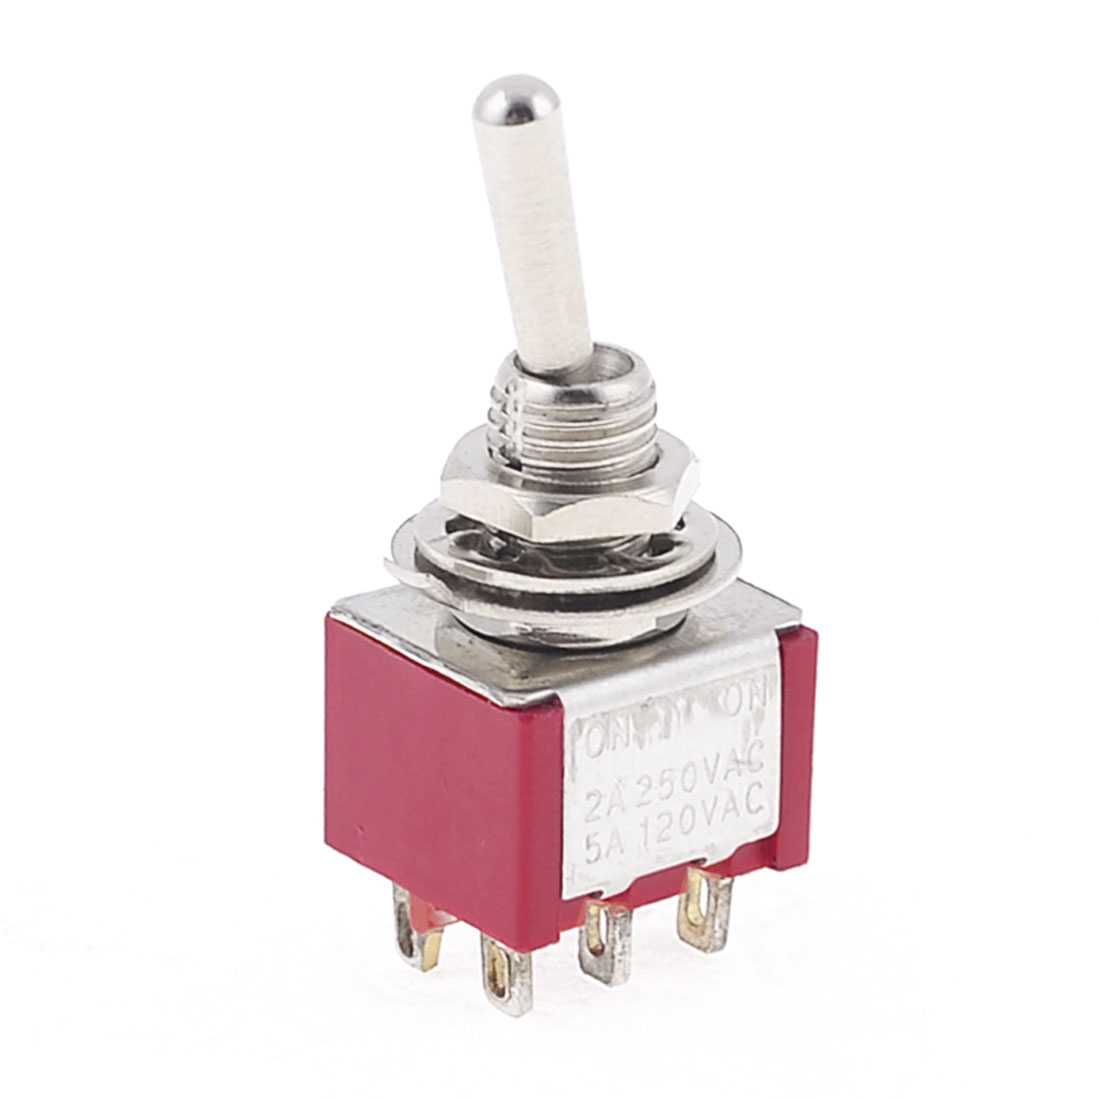 AC 2A 250V 5A 120V 2 Position 6Pins Red ON-ON Toggle Switch